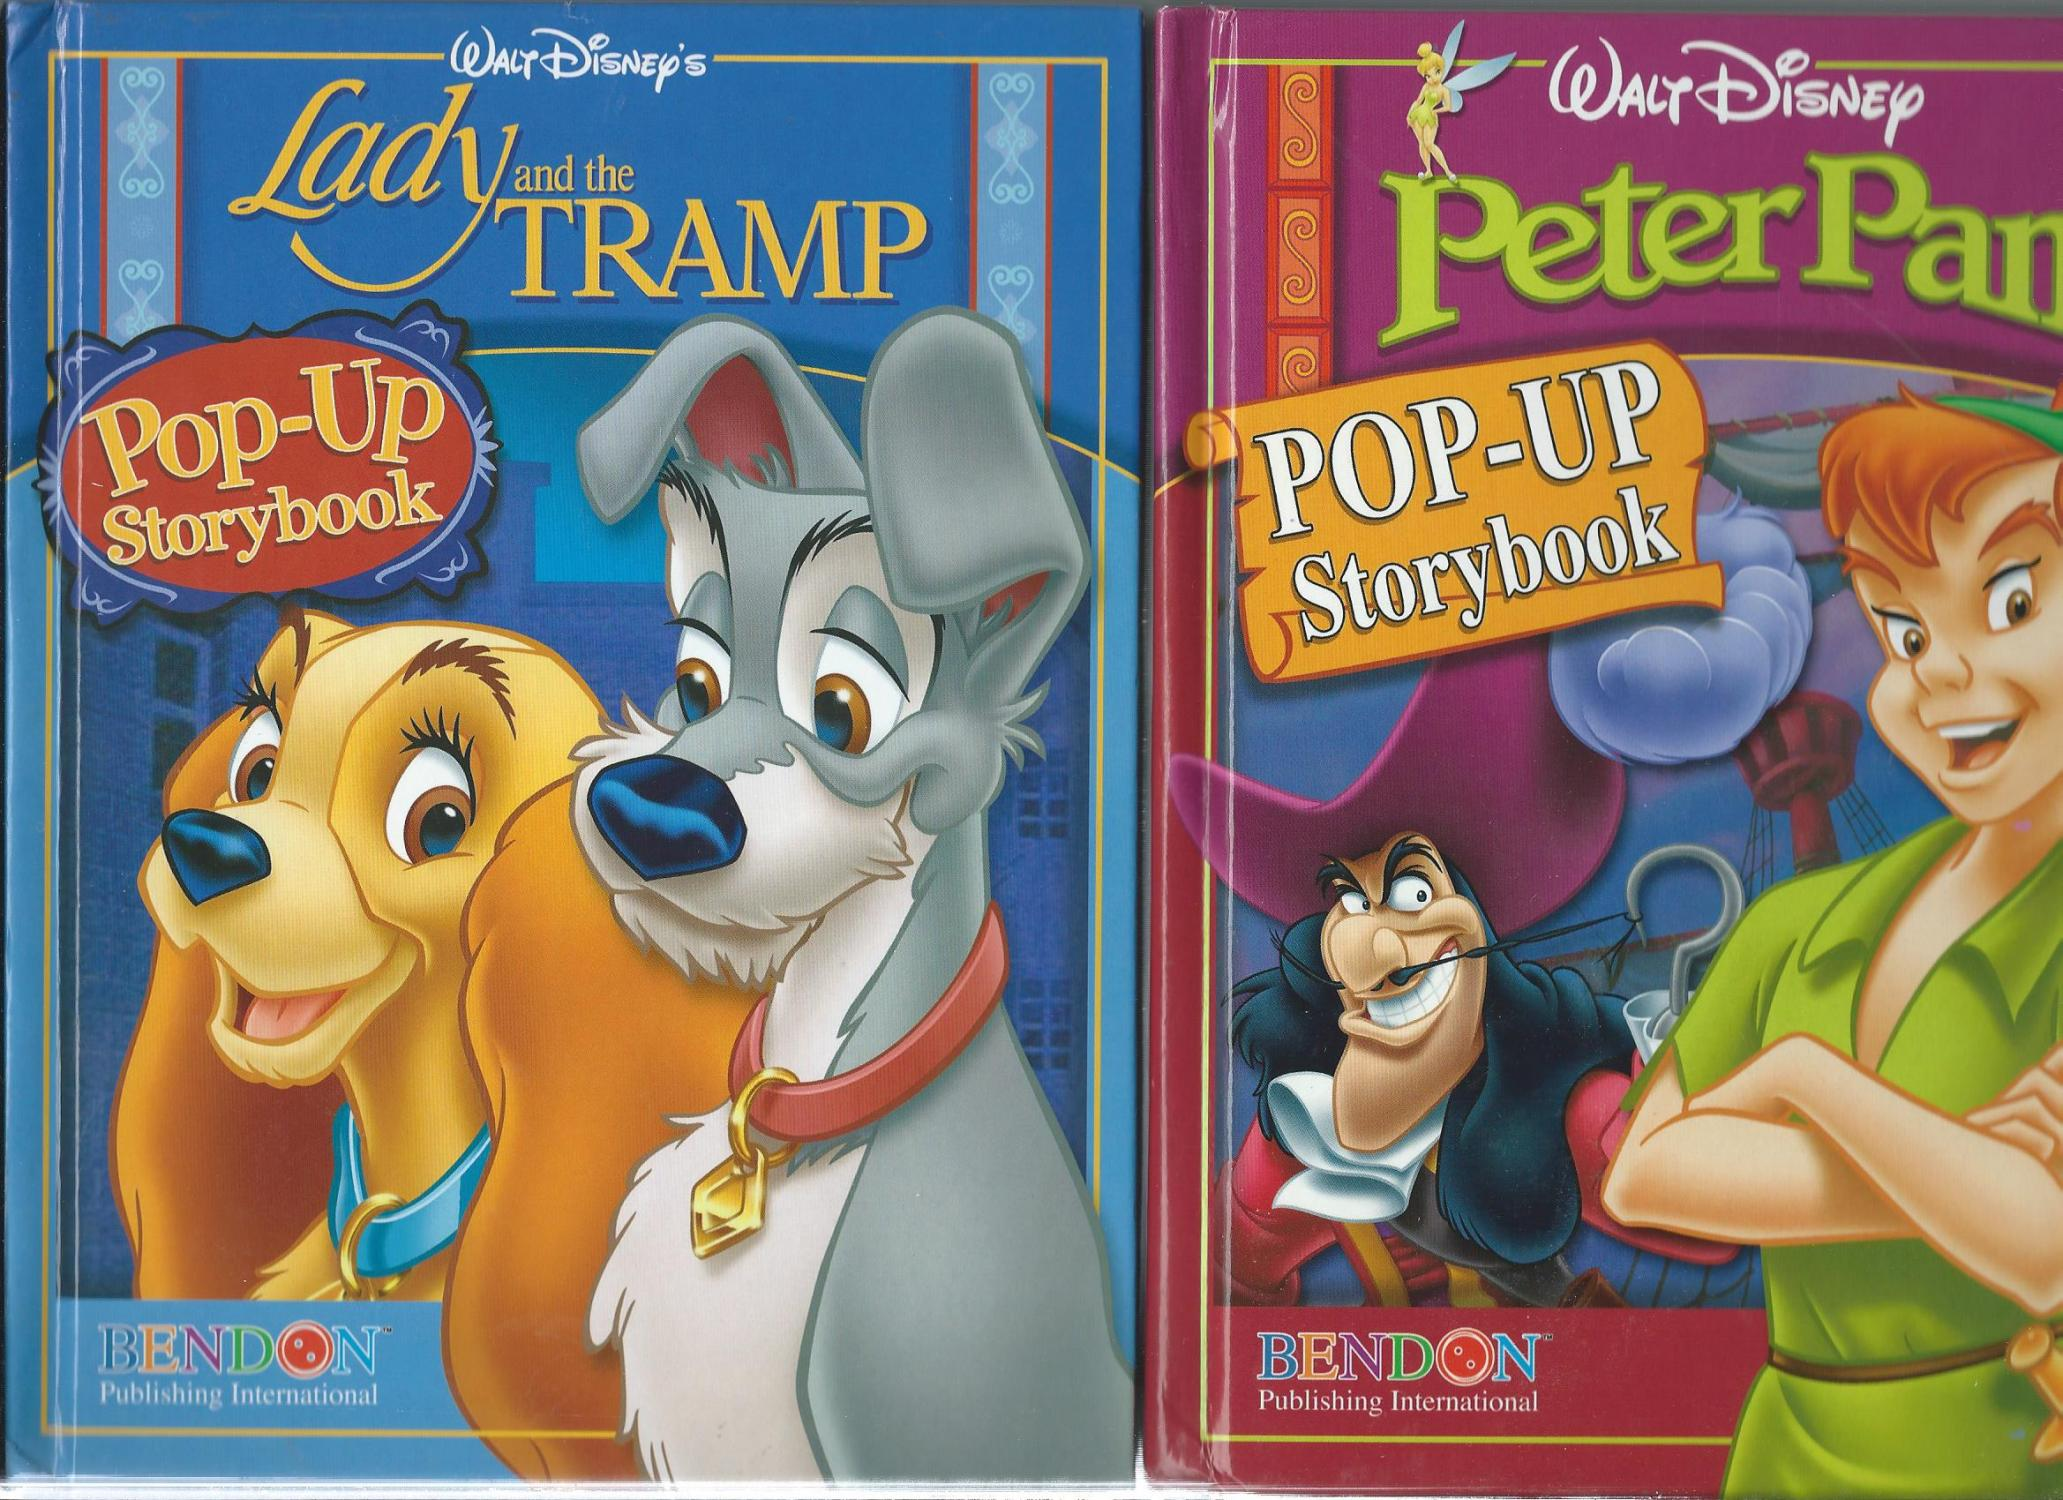 4-Pop-up Storybook Classic Collection in slipcase: LION KING, LADY AND THE TRAMP, BAMBI, PETERPAN: ...